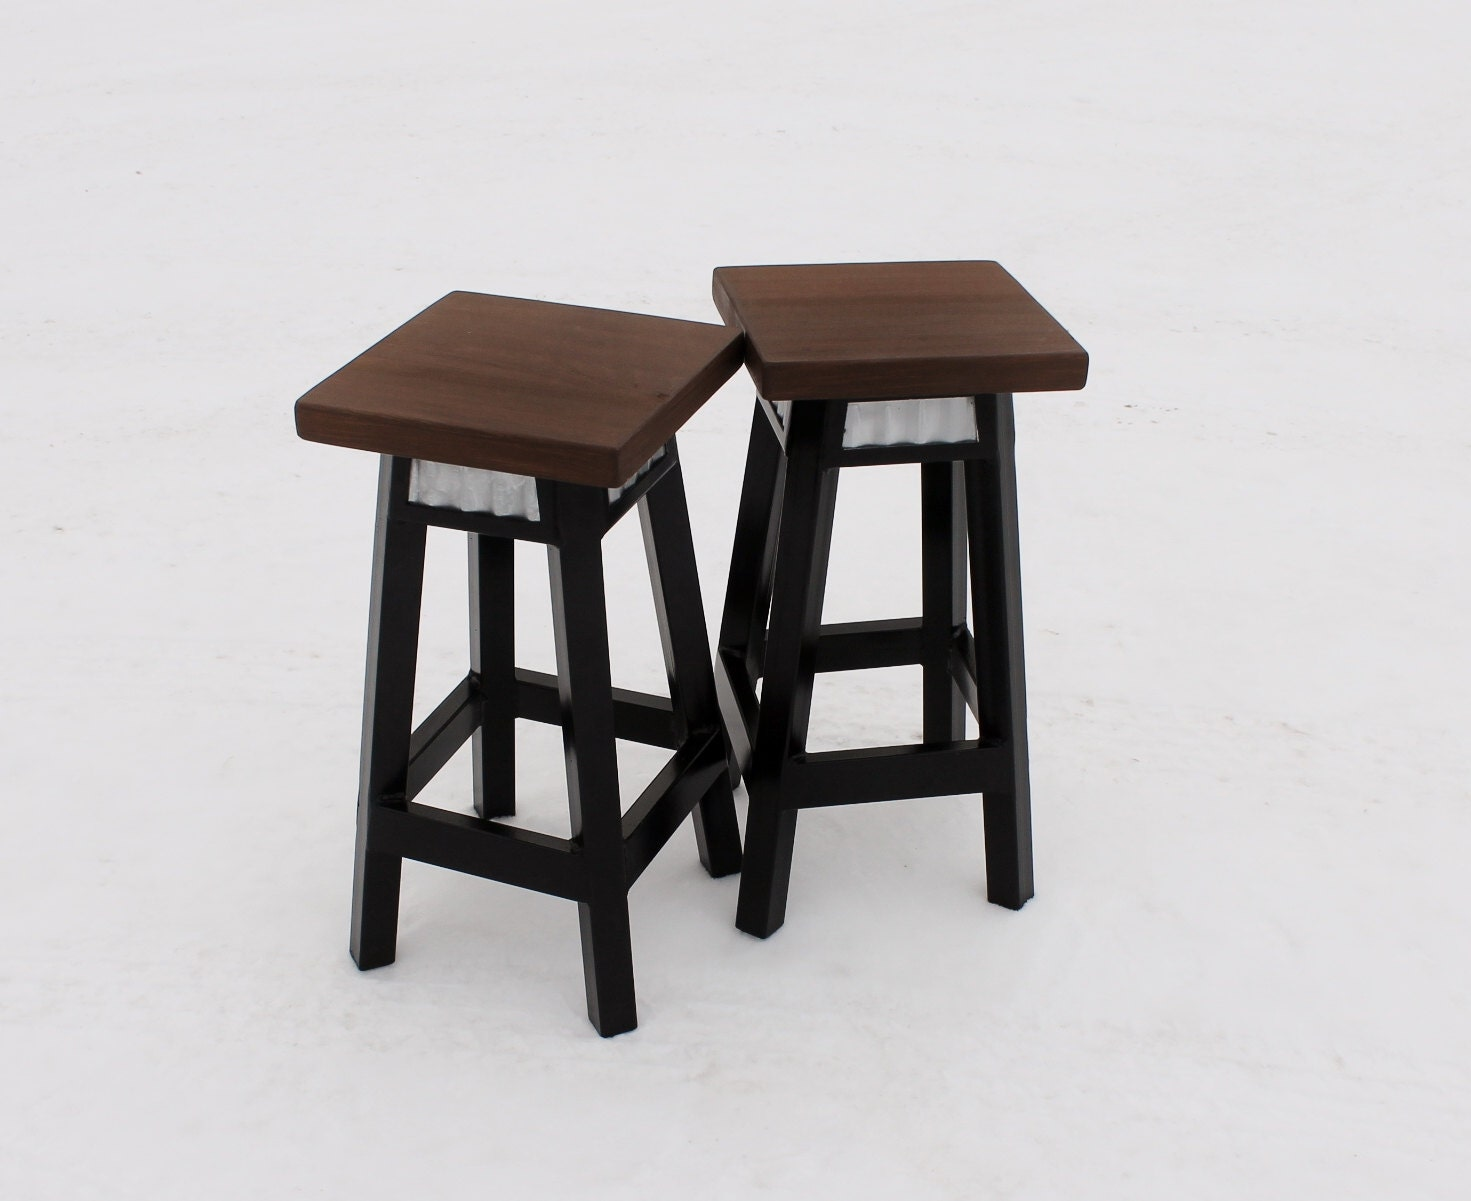 SET OF 4 Bar Stool wTin Inserts Metal Base by Keeriah on Etsy : ilfullxfull738587057mnp5 from www.etsy.com size 1471 x 1201 jpeg 140kB